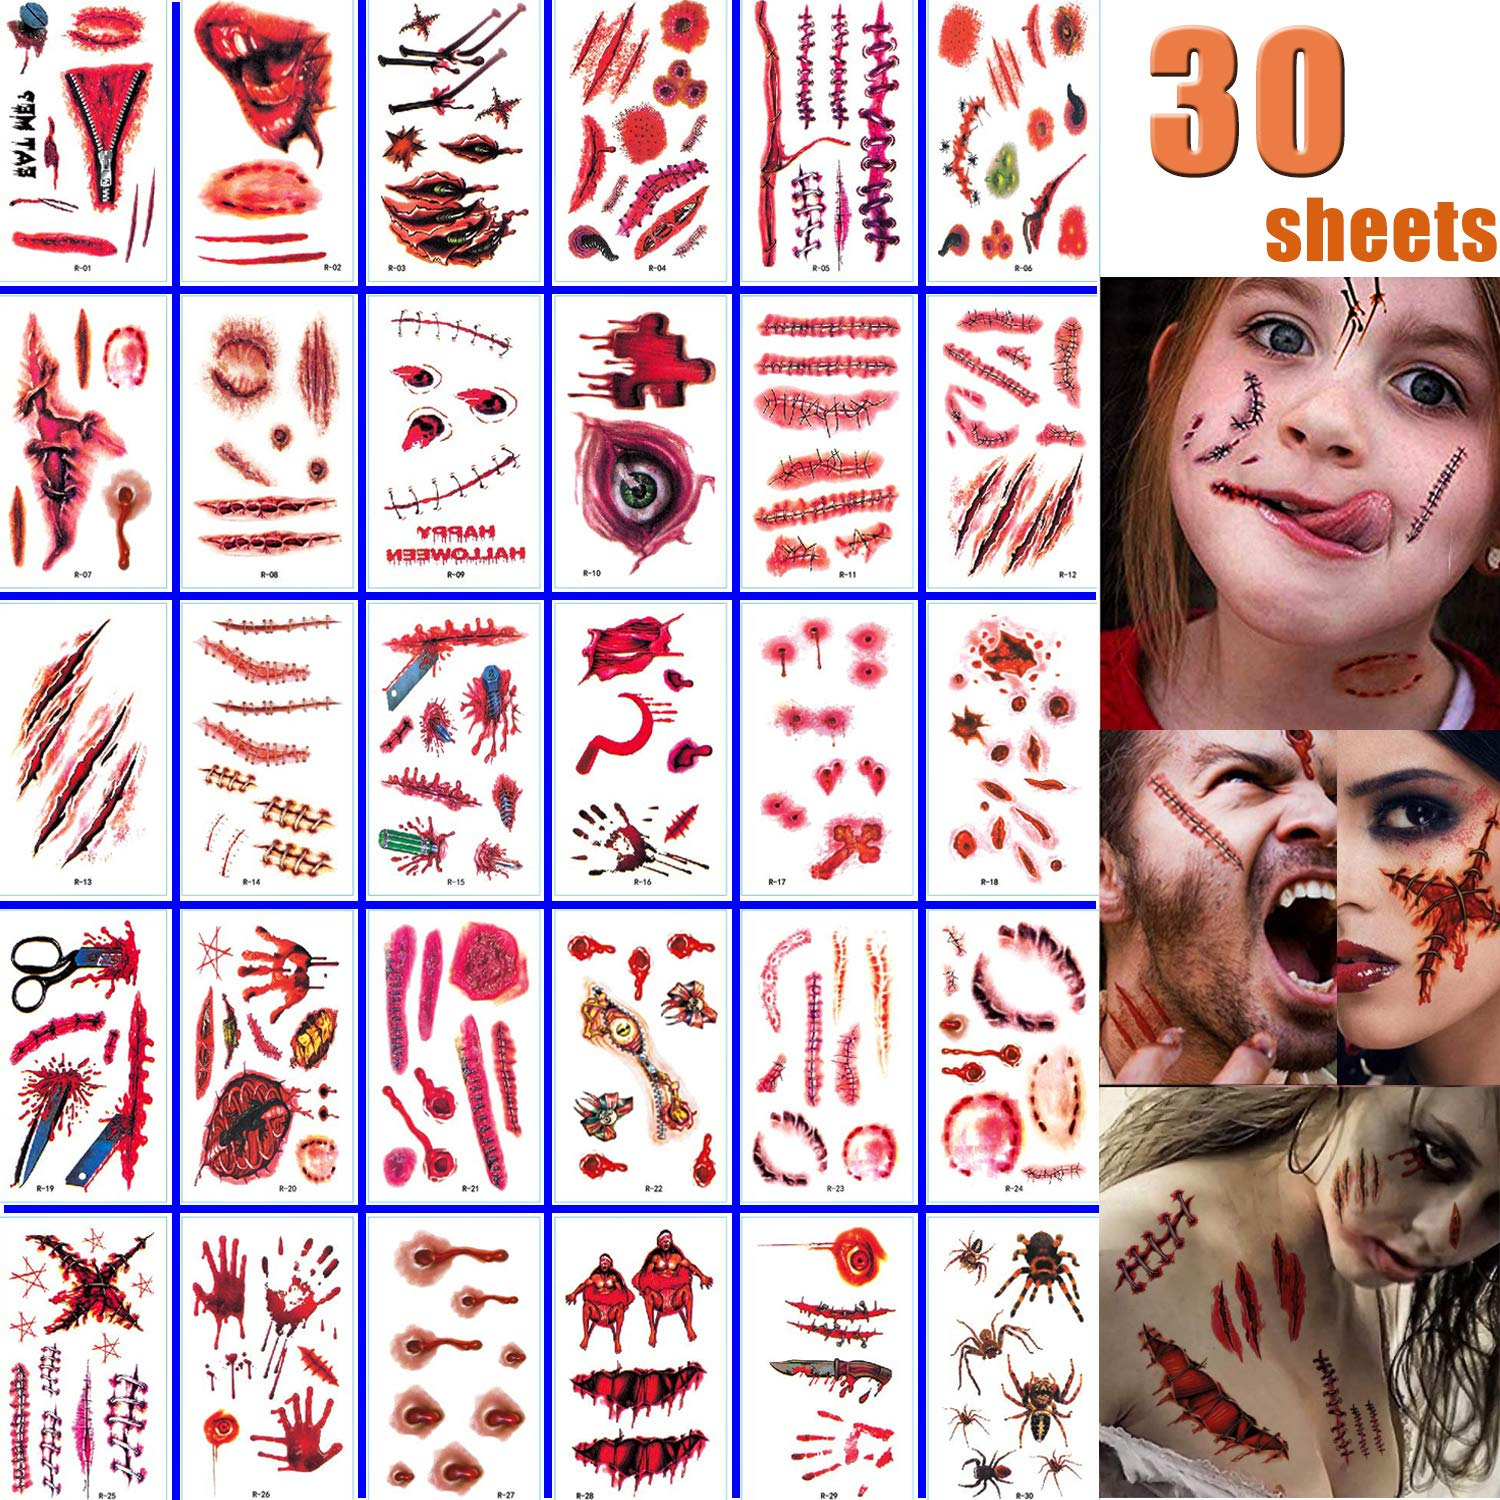 Halloween Face Fake Scar Tattoos, 30 Sheets Zombie Makeup Kit Decoration, Realistic Bloody Makeup Face Decorations Fake Injury Wound Tattoo for Halloween Costume for Party Supplies Cosplay Props